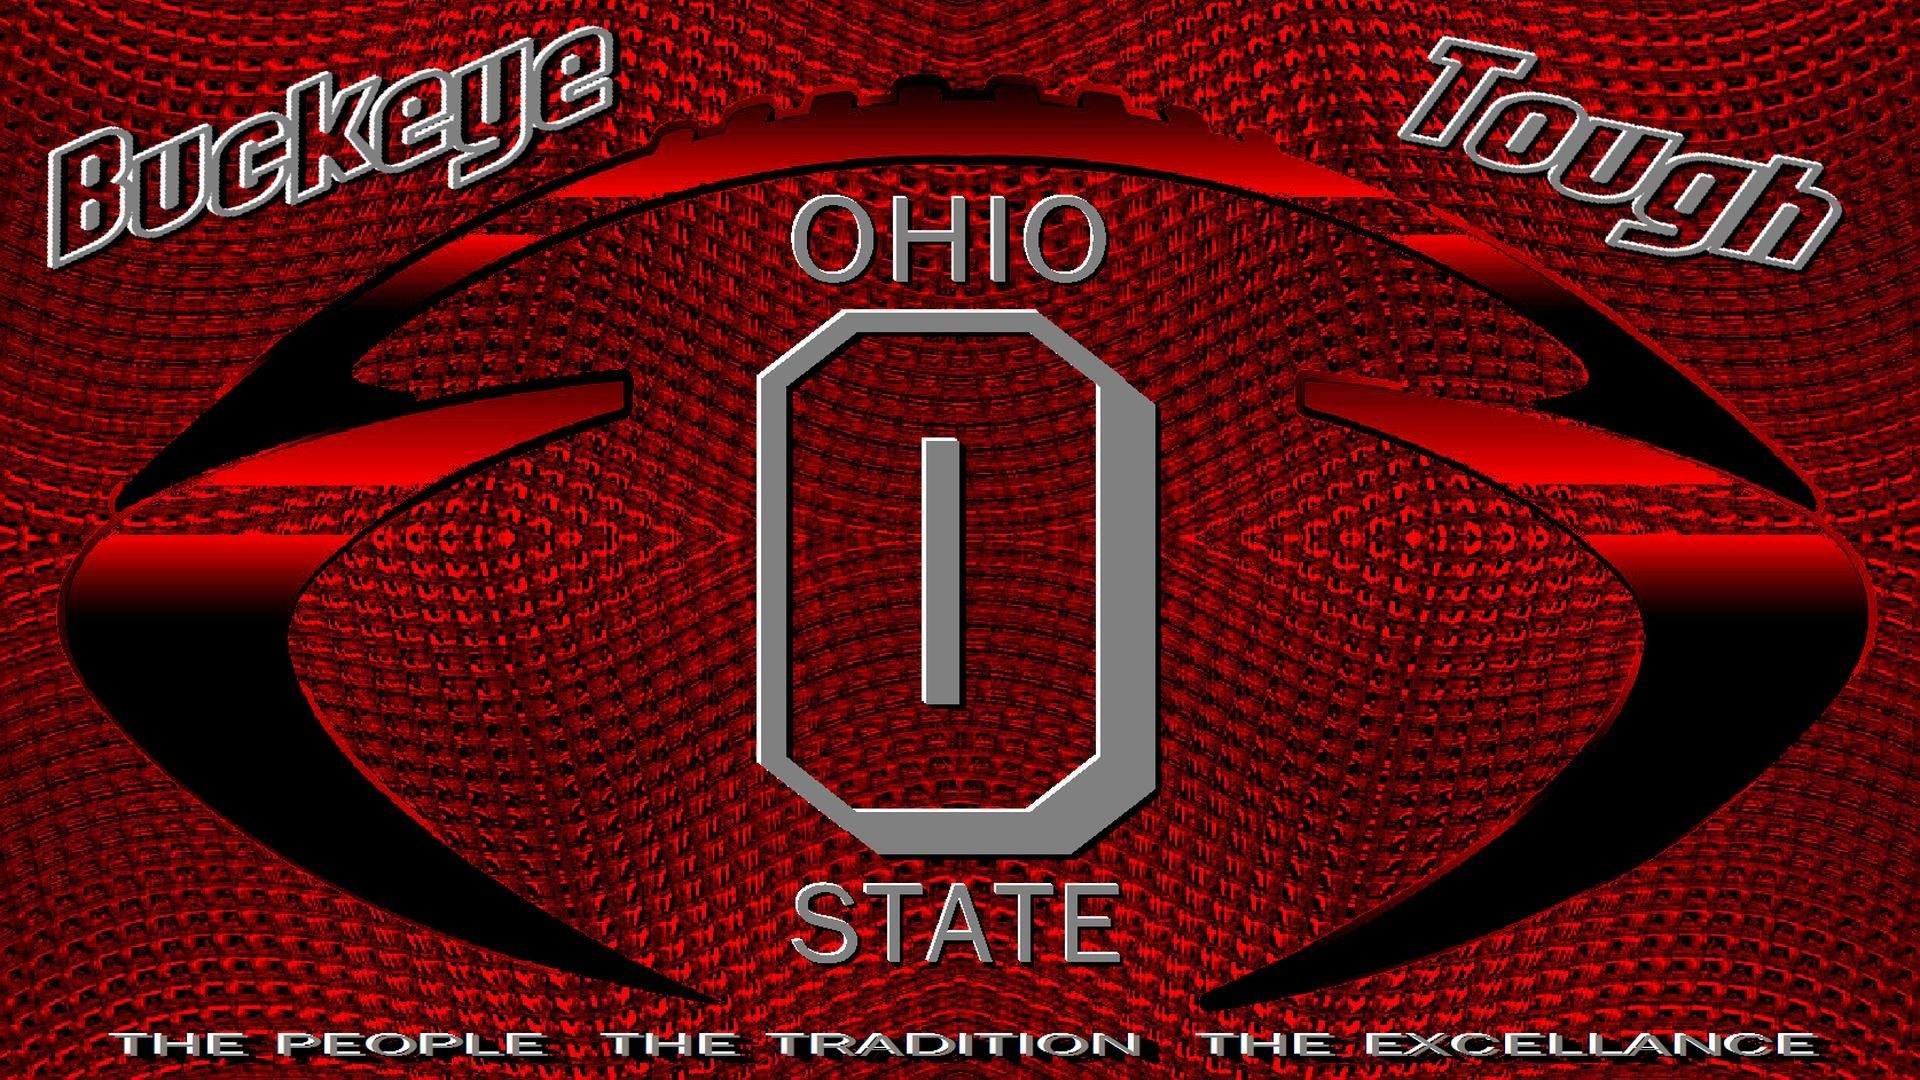 1920x1080  Ohio State Buckeyes Football Wallpapers Wallpaper Wiki